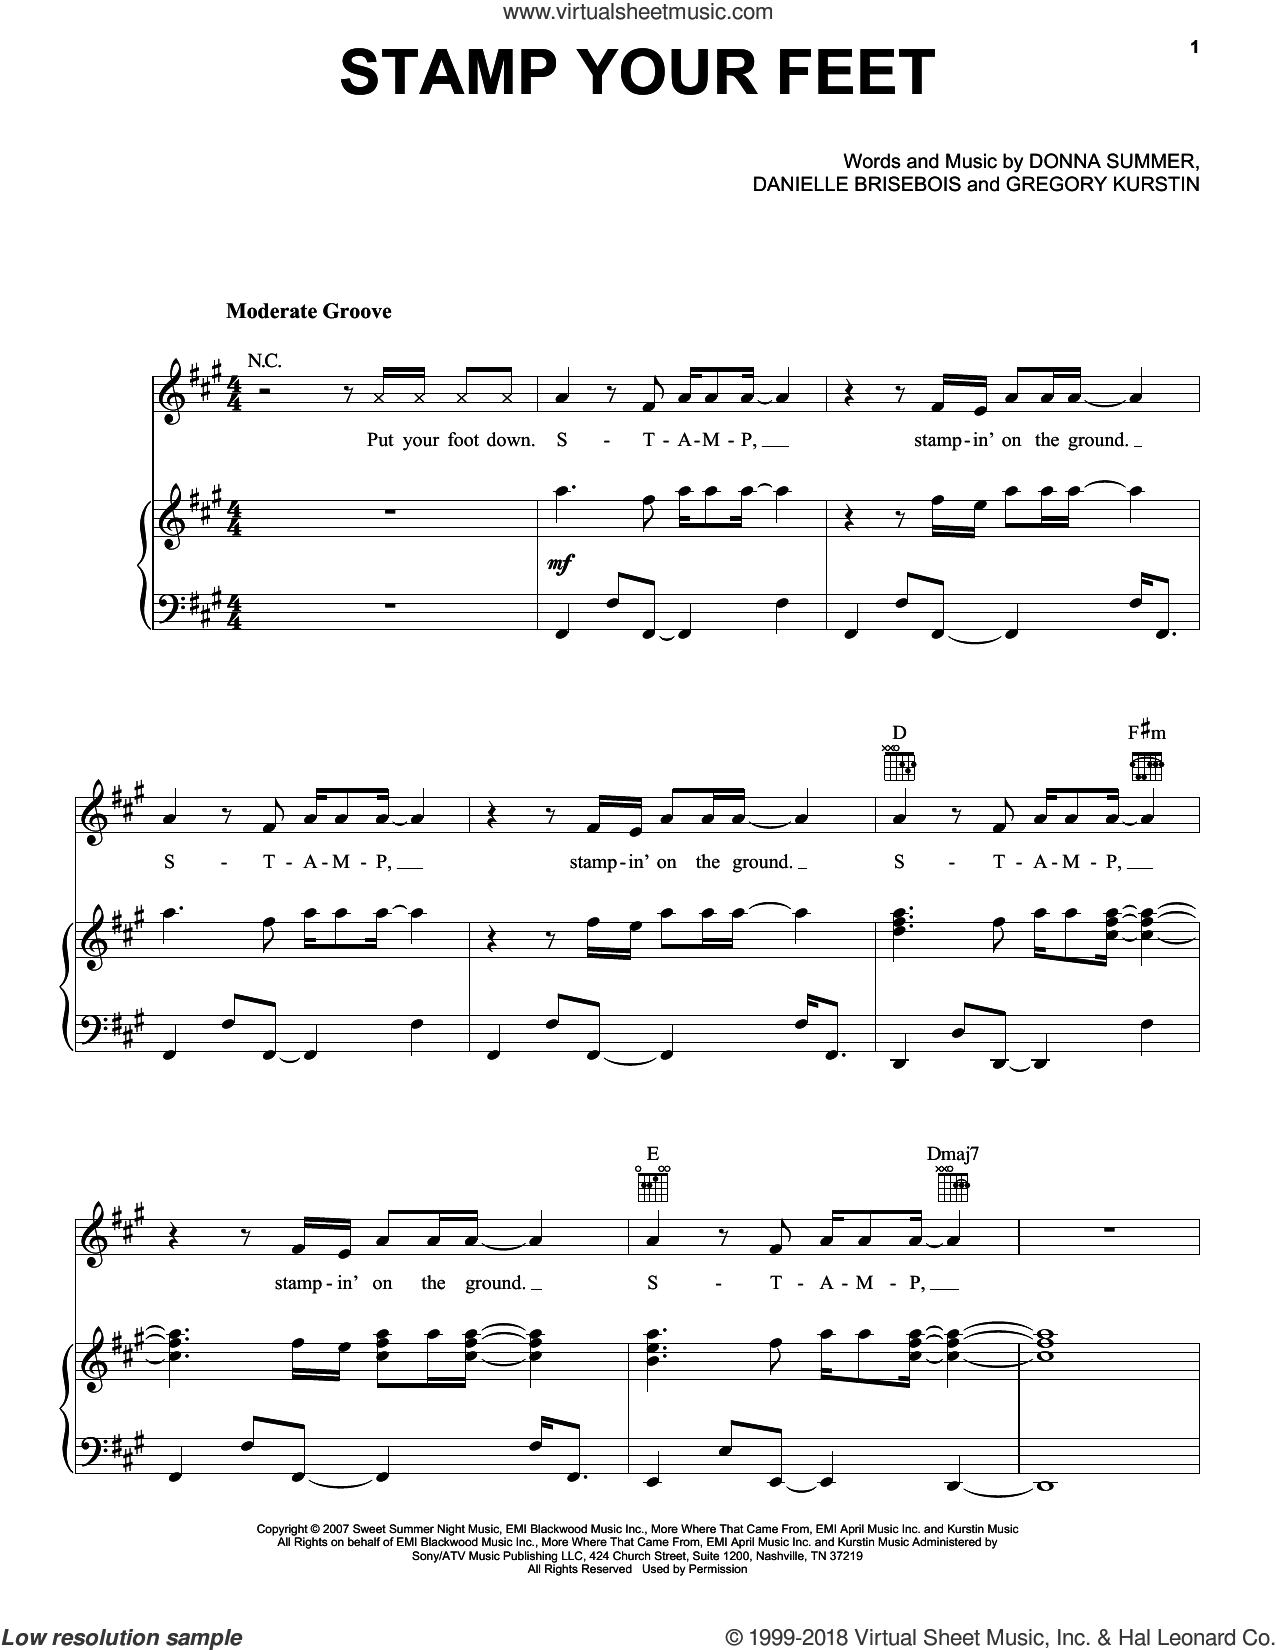 Stamp Your Feet sheet music for voice, piano or guitar by Donna Summer, Danielle Brisebois, Donna A. Summer and Gregory Kurstin, intermediate skill level